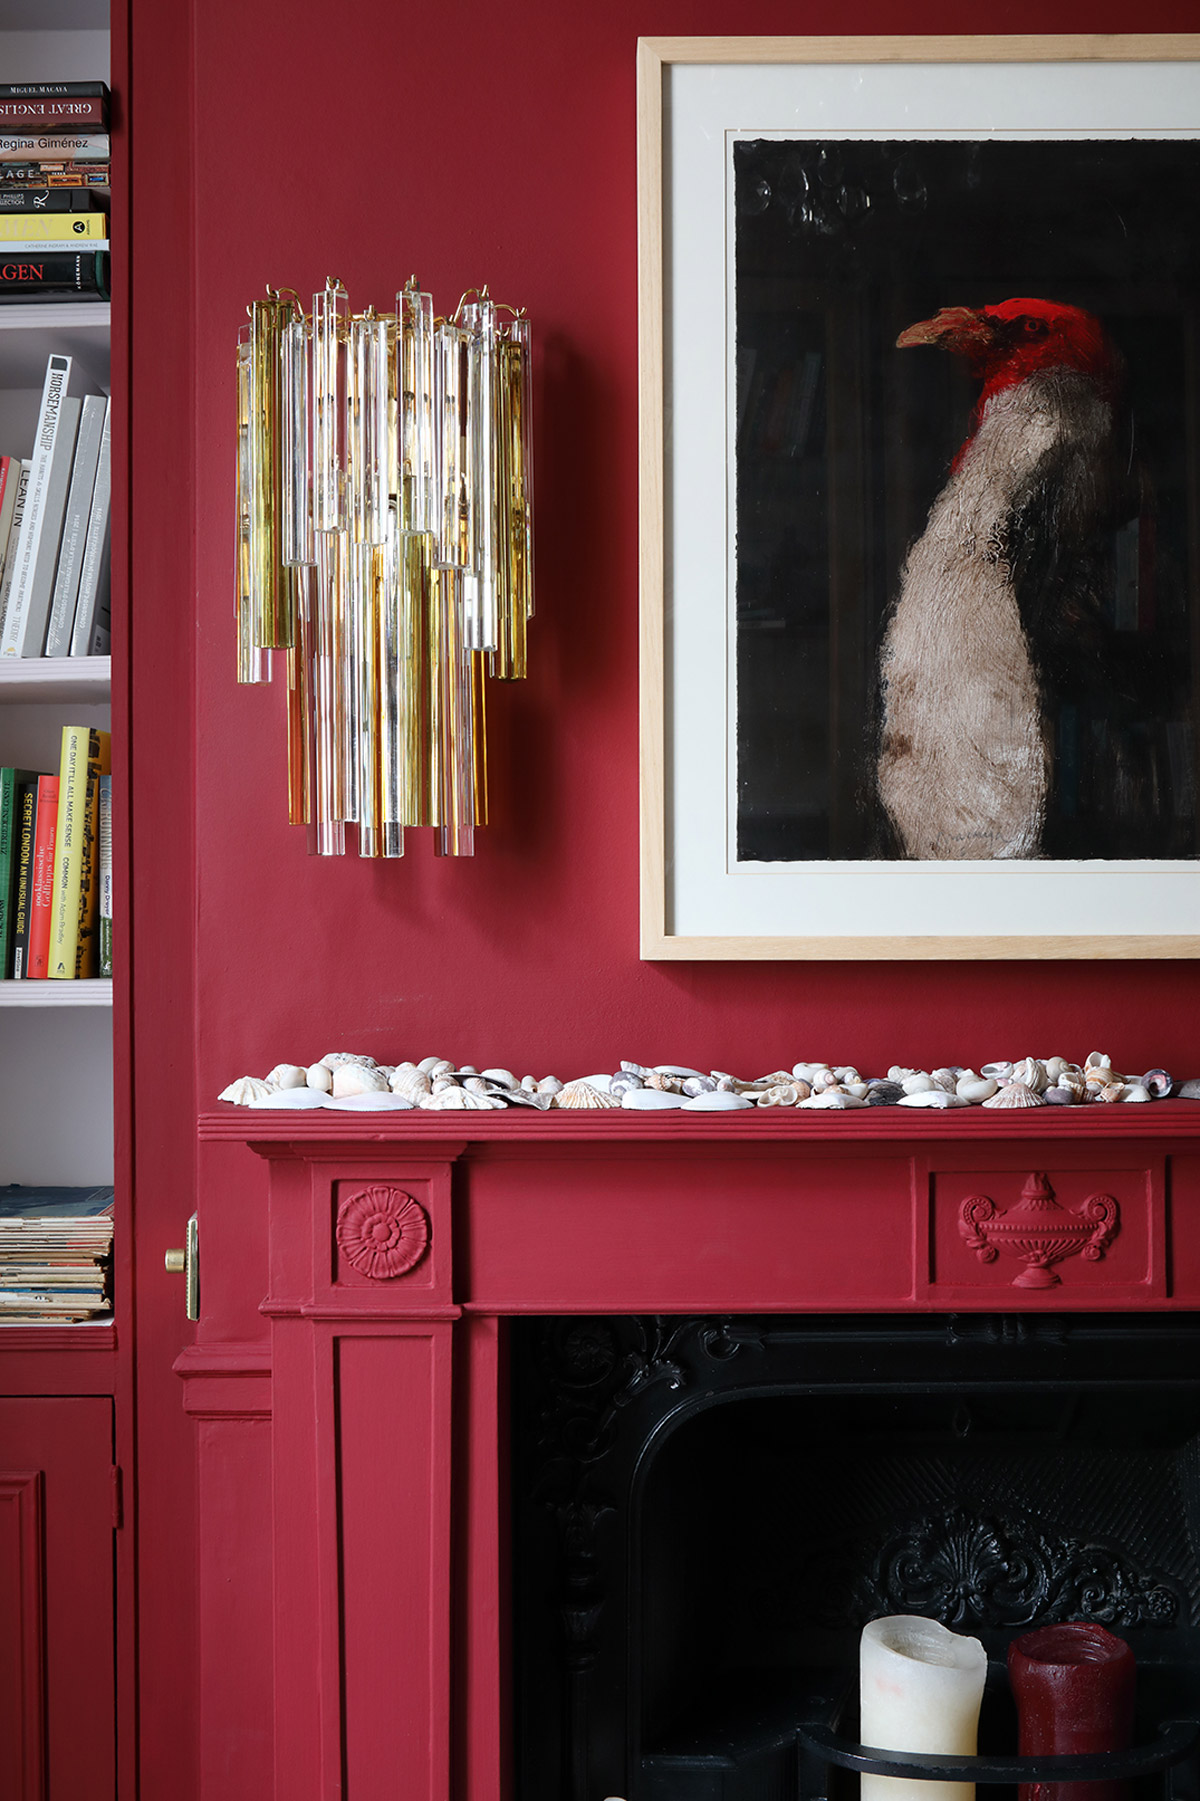 Interior designer, Ana Engelhorn project image of fireplace